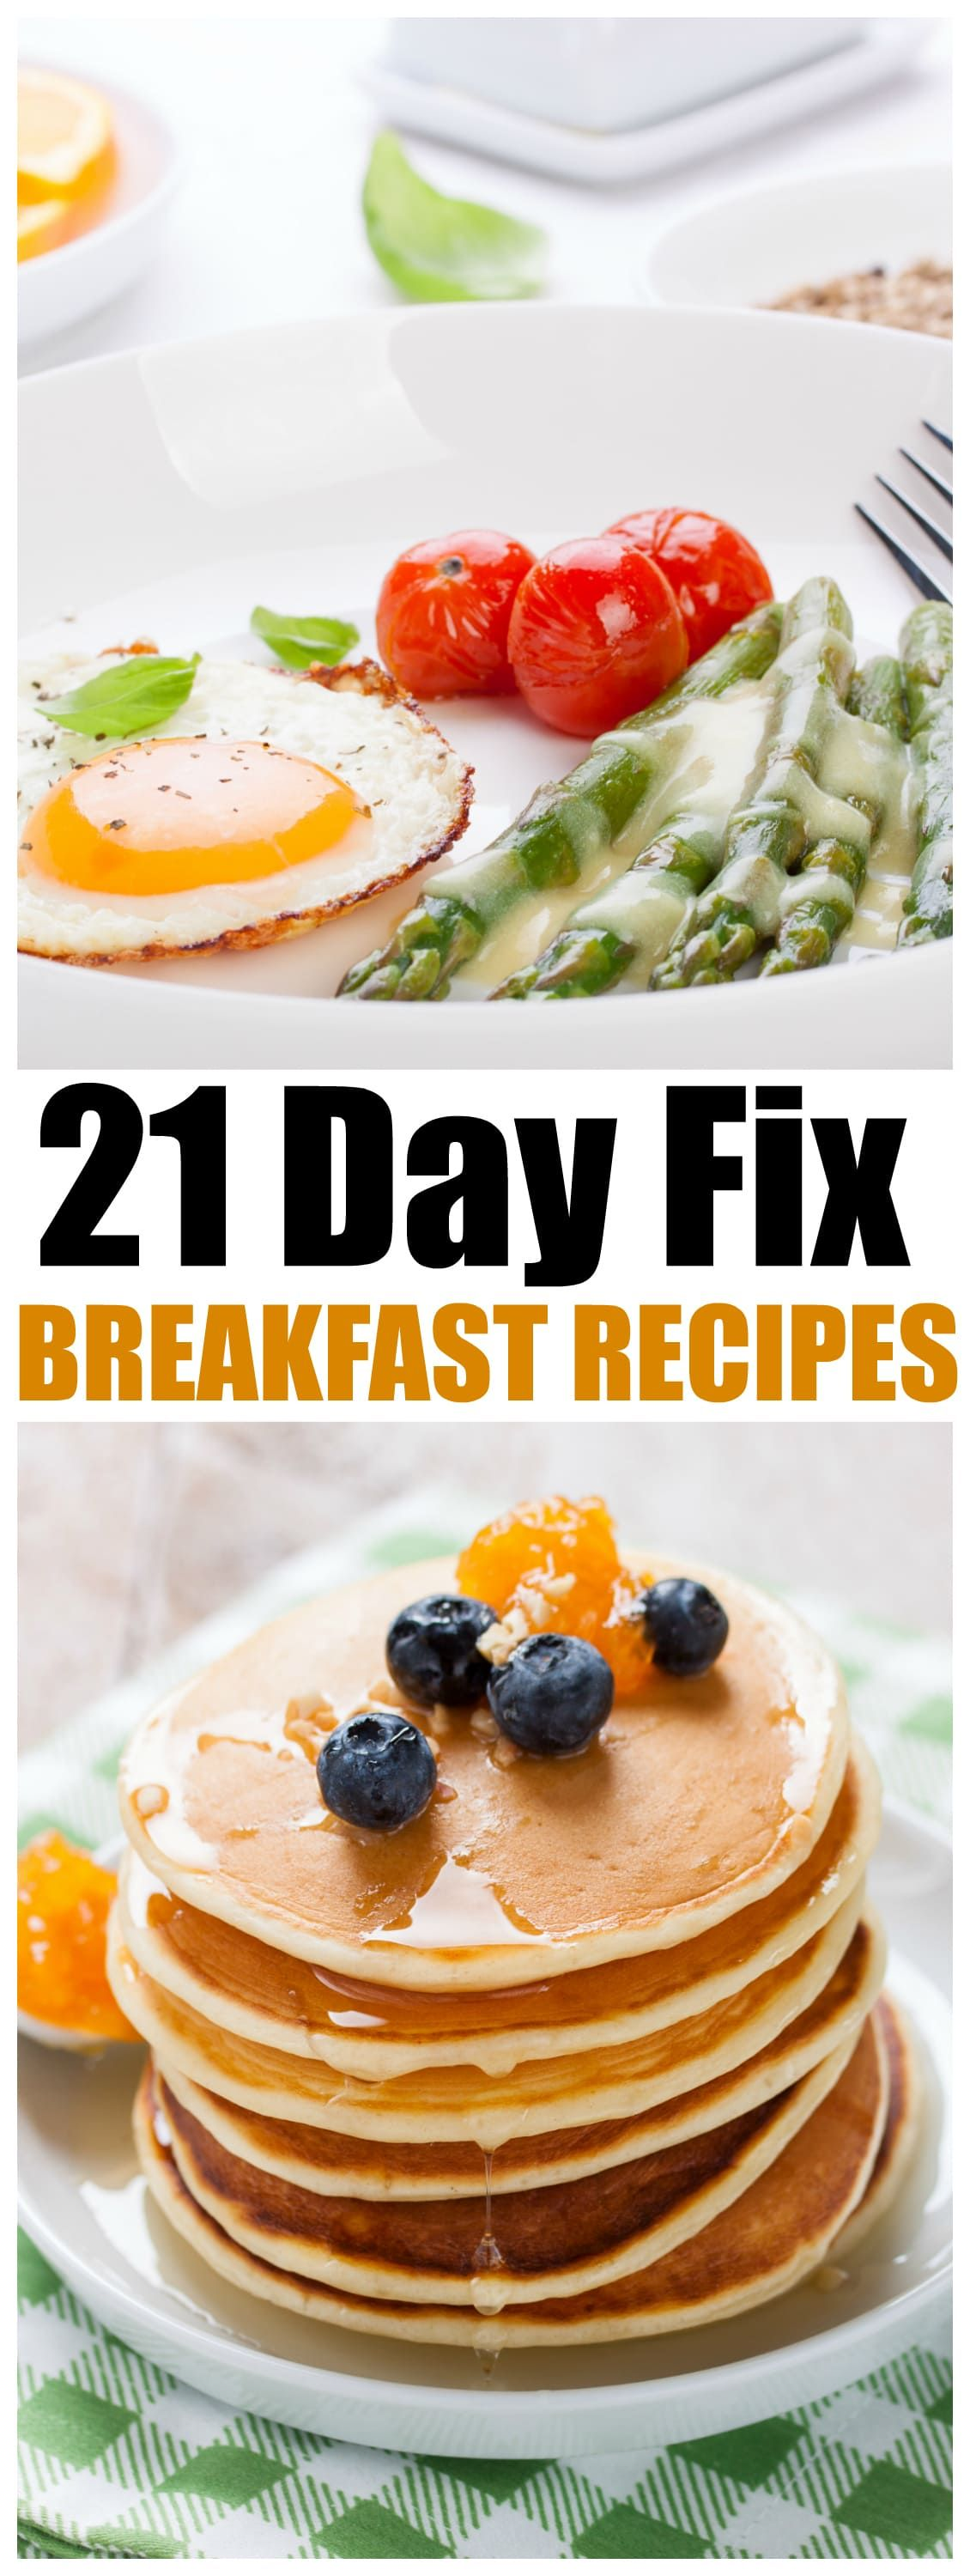 21 Day Fix Breakfast Recipes Get A Breakfast For Every Work Day Of The Month With These 20 21 Day 21 Day Fix Breakfast 21 Day Fix Diet Breakfast Recipes Easy